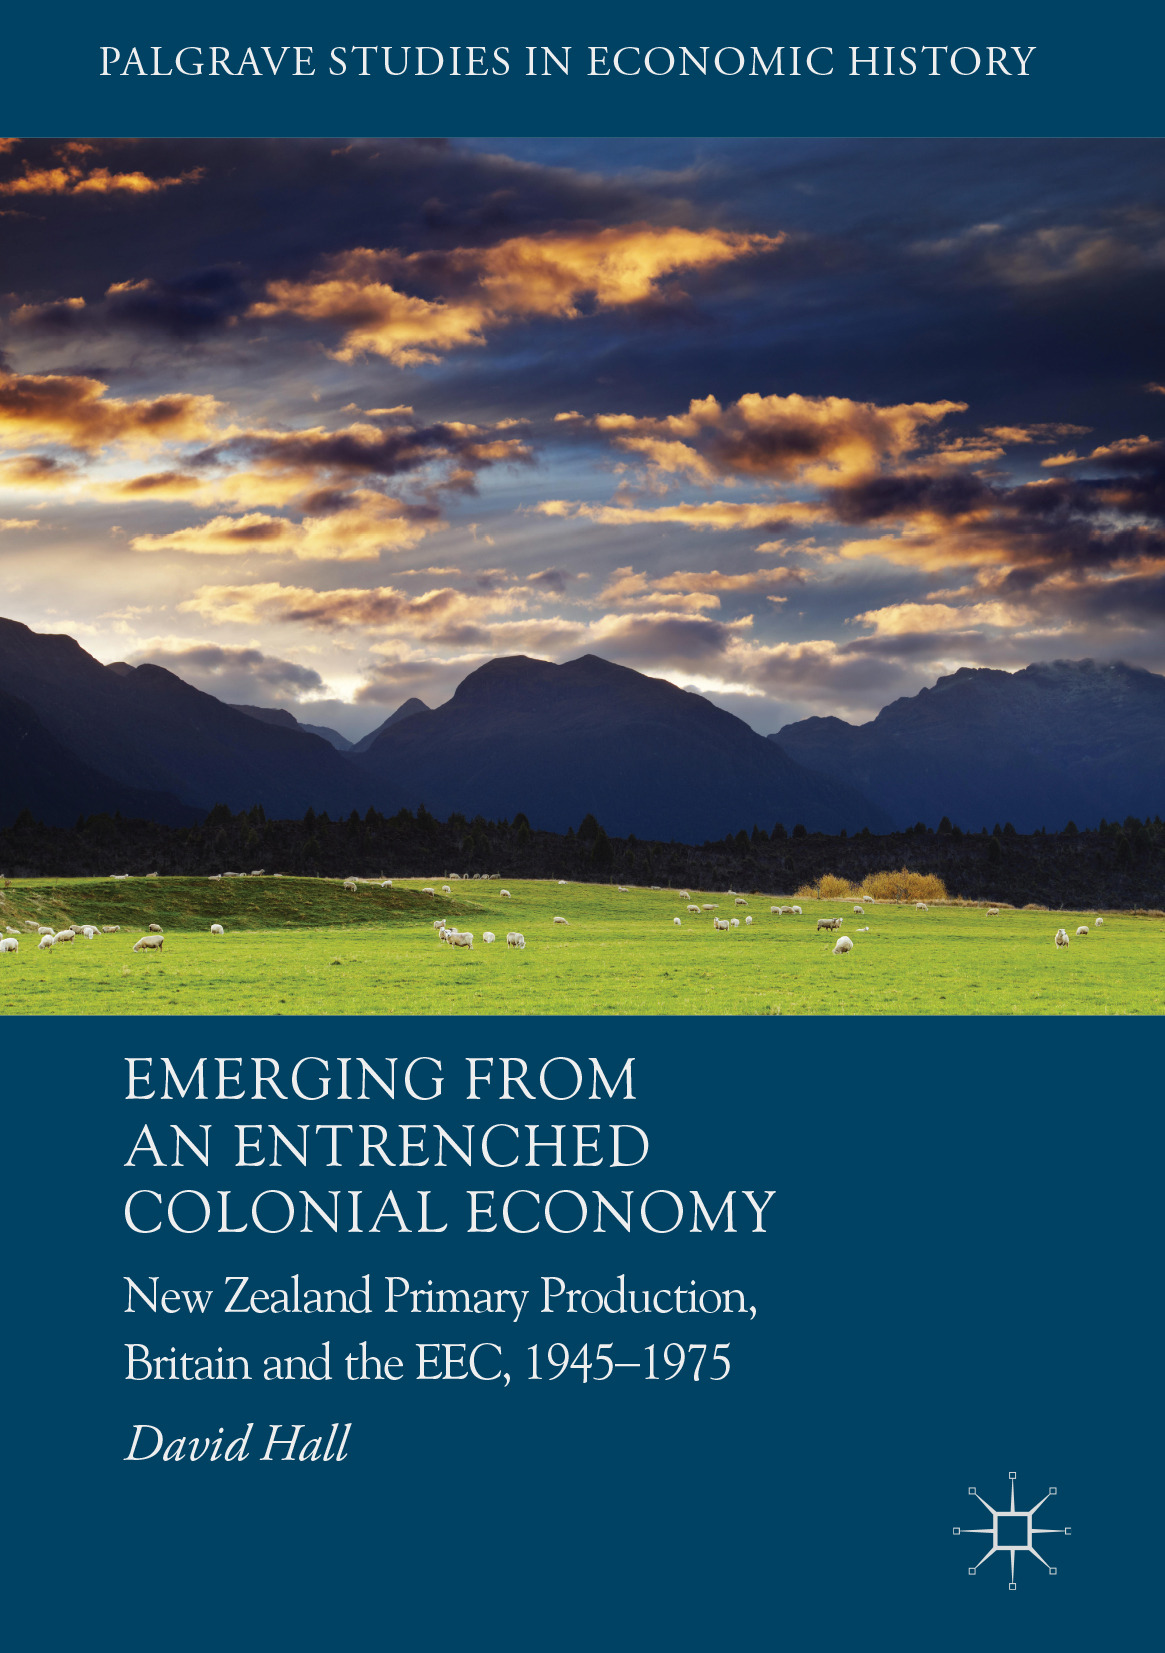 Hall, David - Emerging from an Entrenched Colonial Economy, ebook